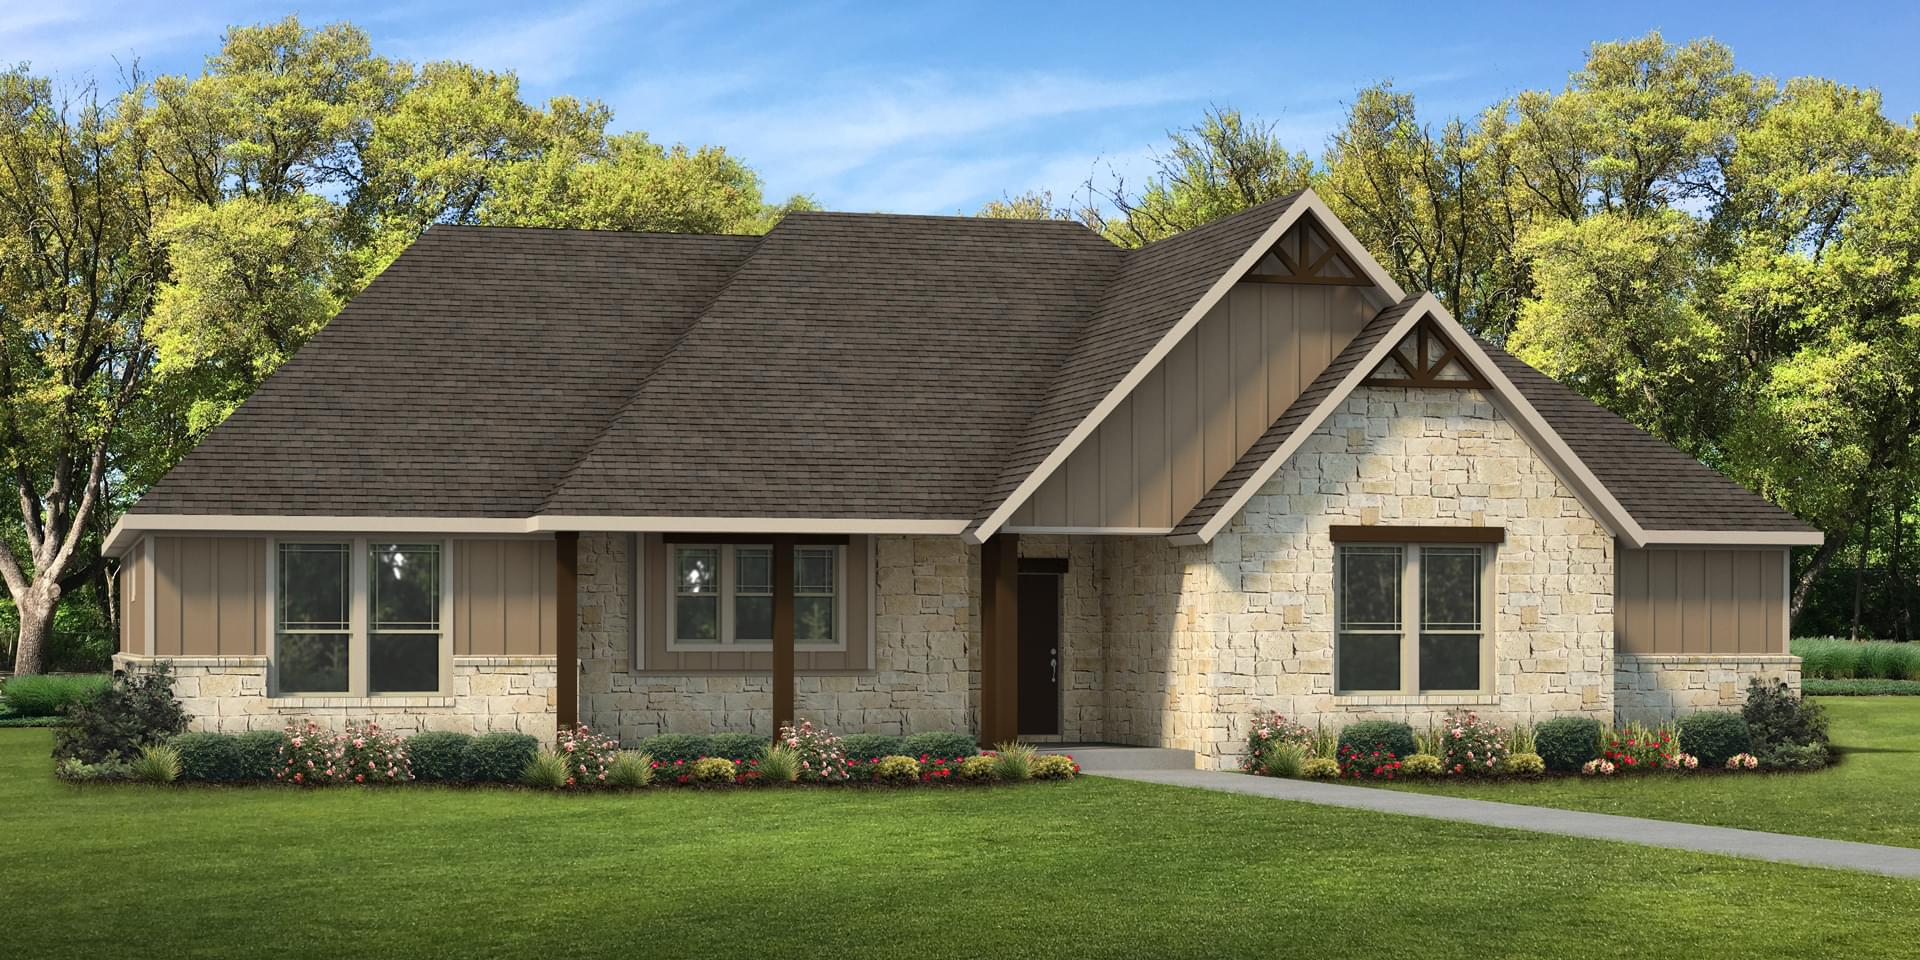 The Abilene Custom Home Plan from Tilson Homes